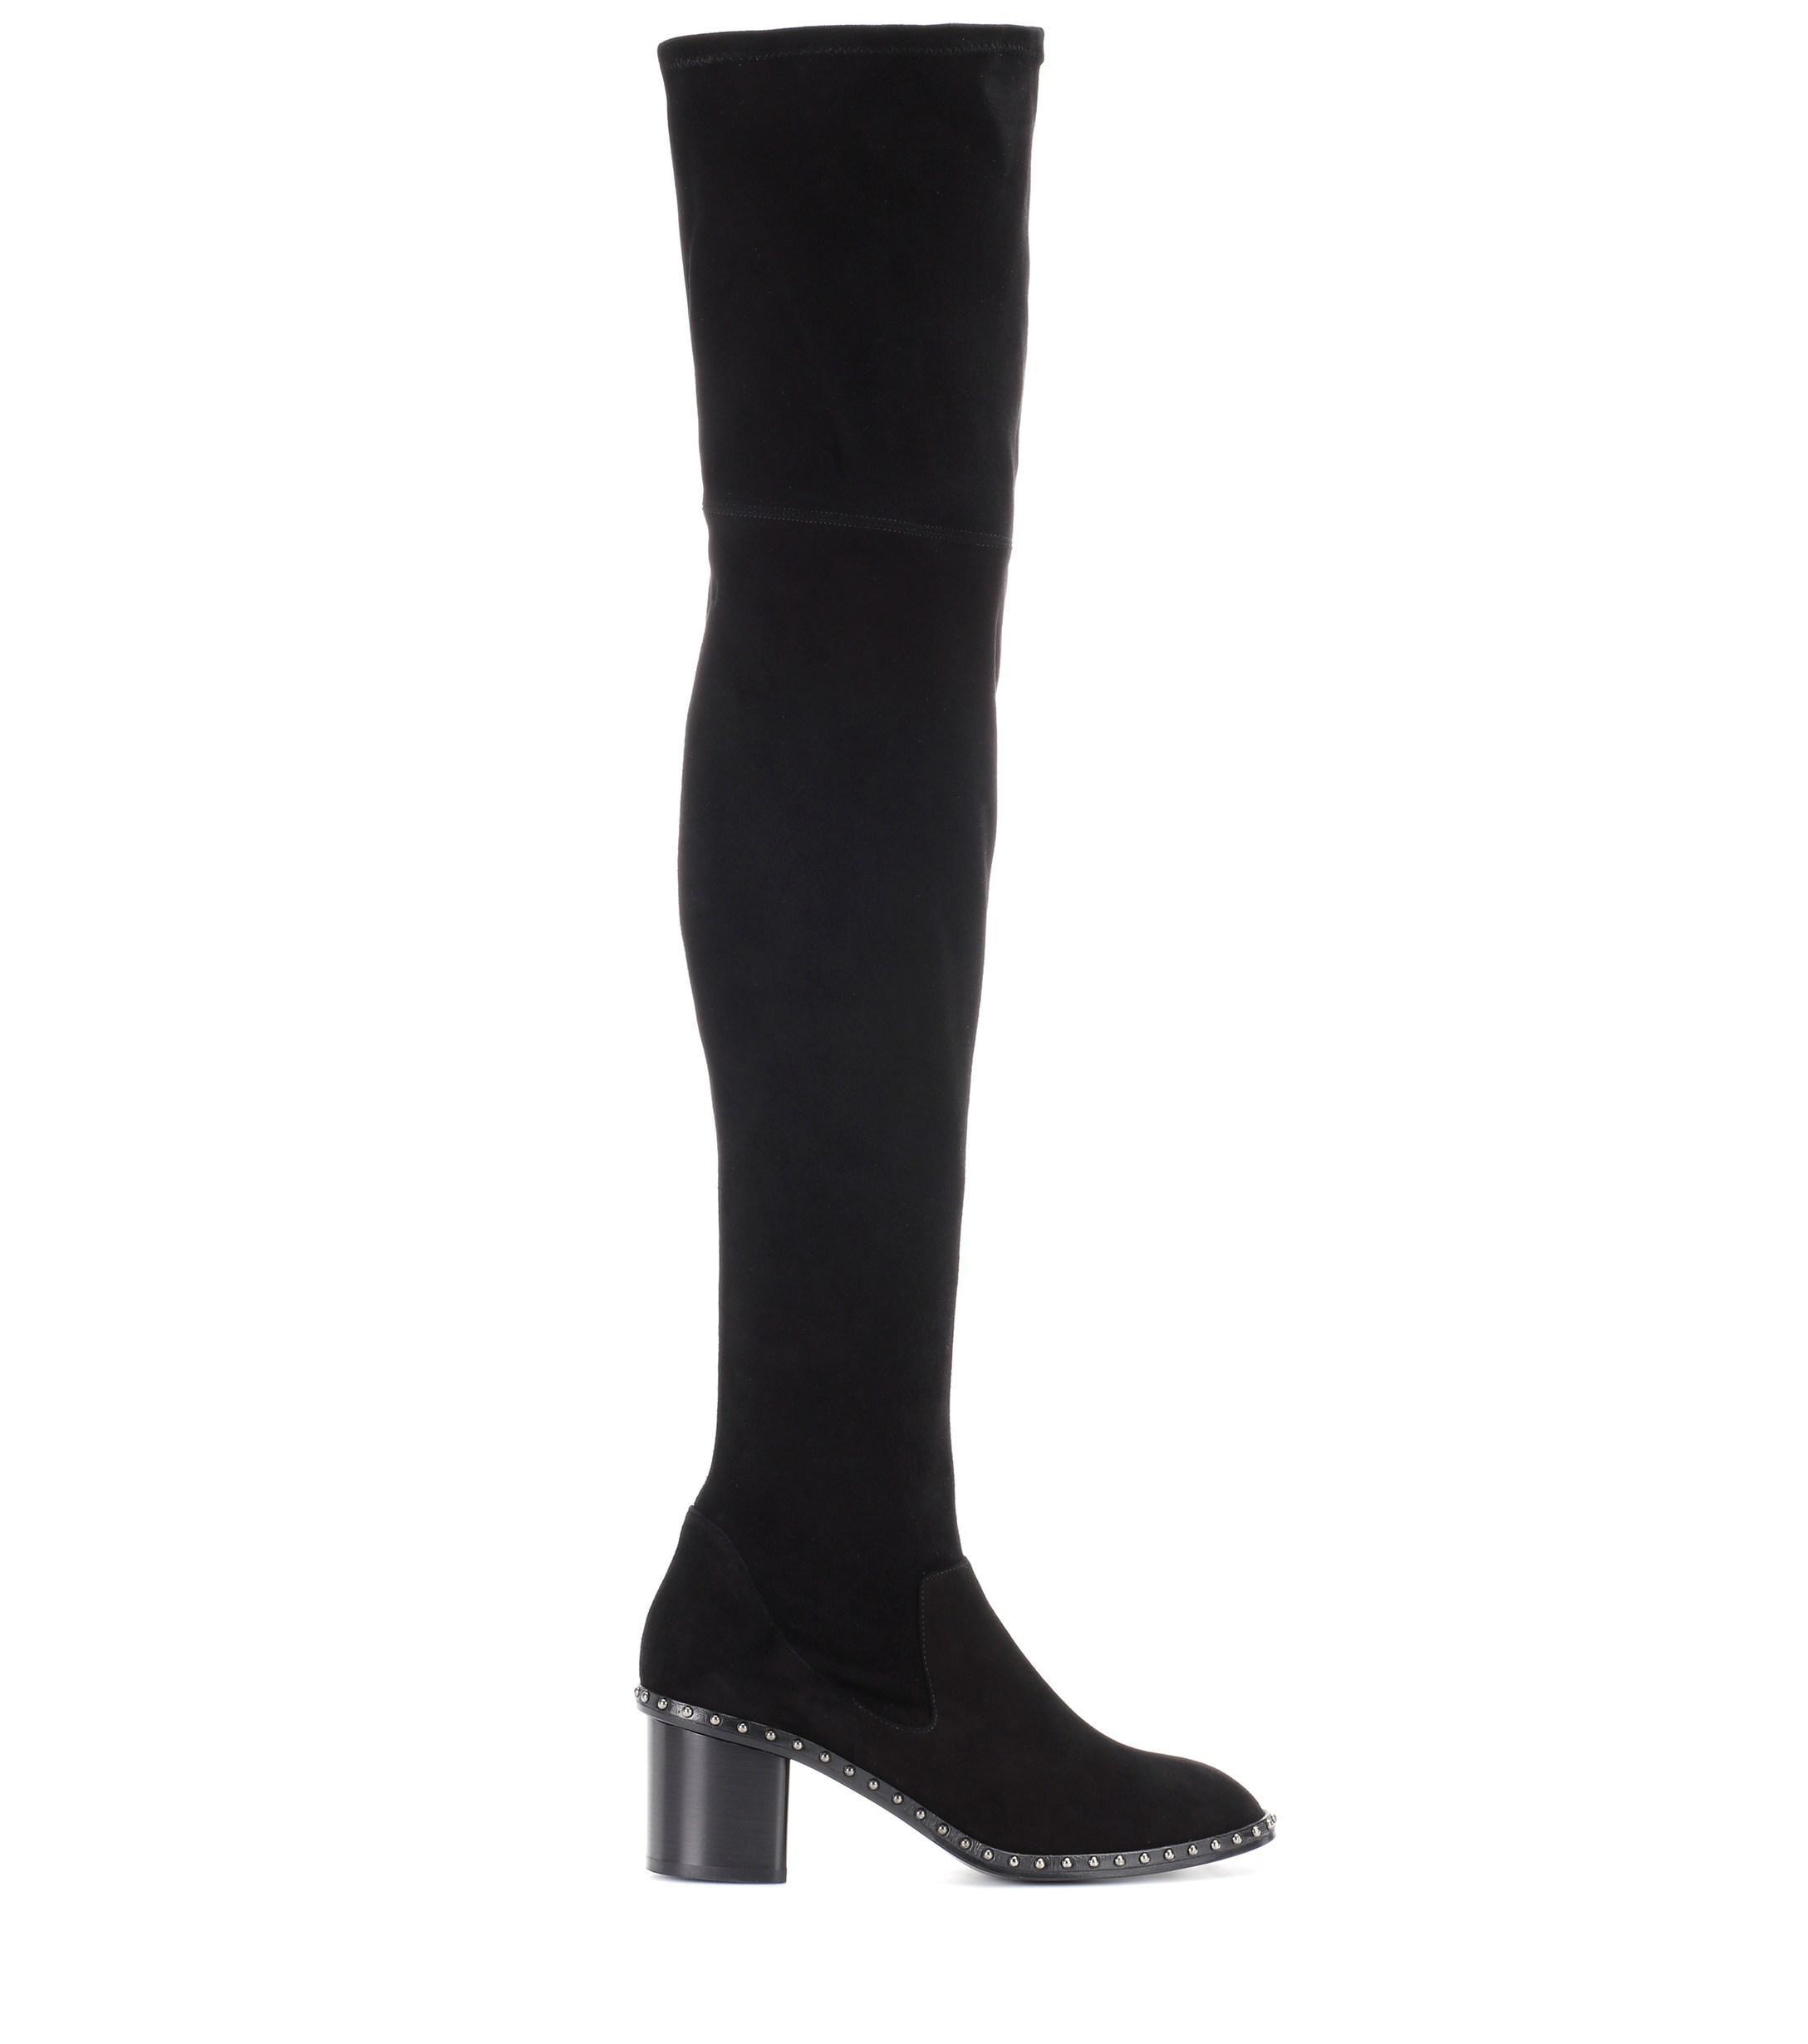 bc729be5598 Lyst - Rag   Bone Rina Suede Over-the-knee Boots in Black